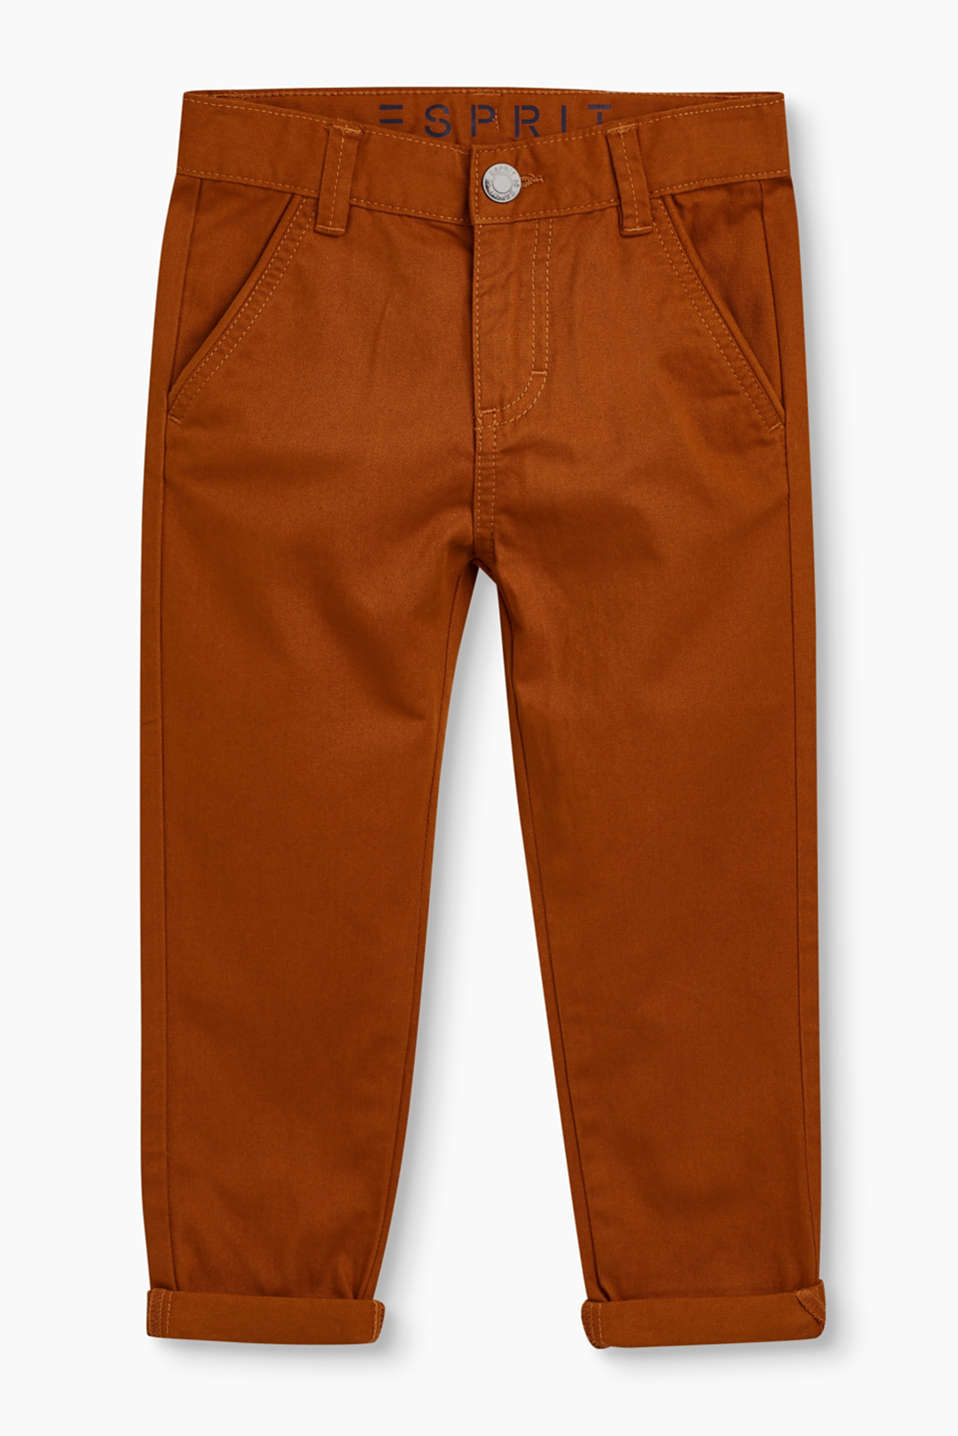 Esprit - Chinos with adjustable waist, 100% cotton